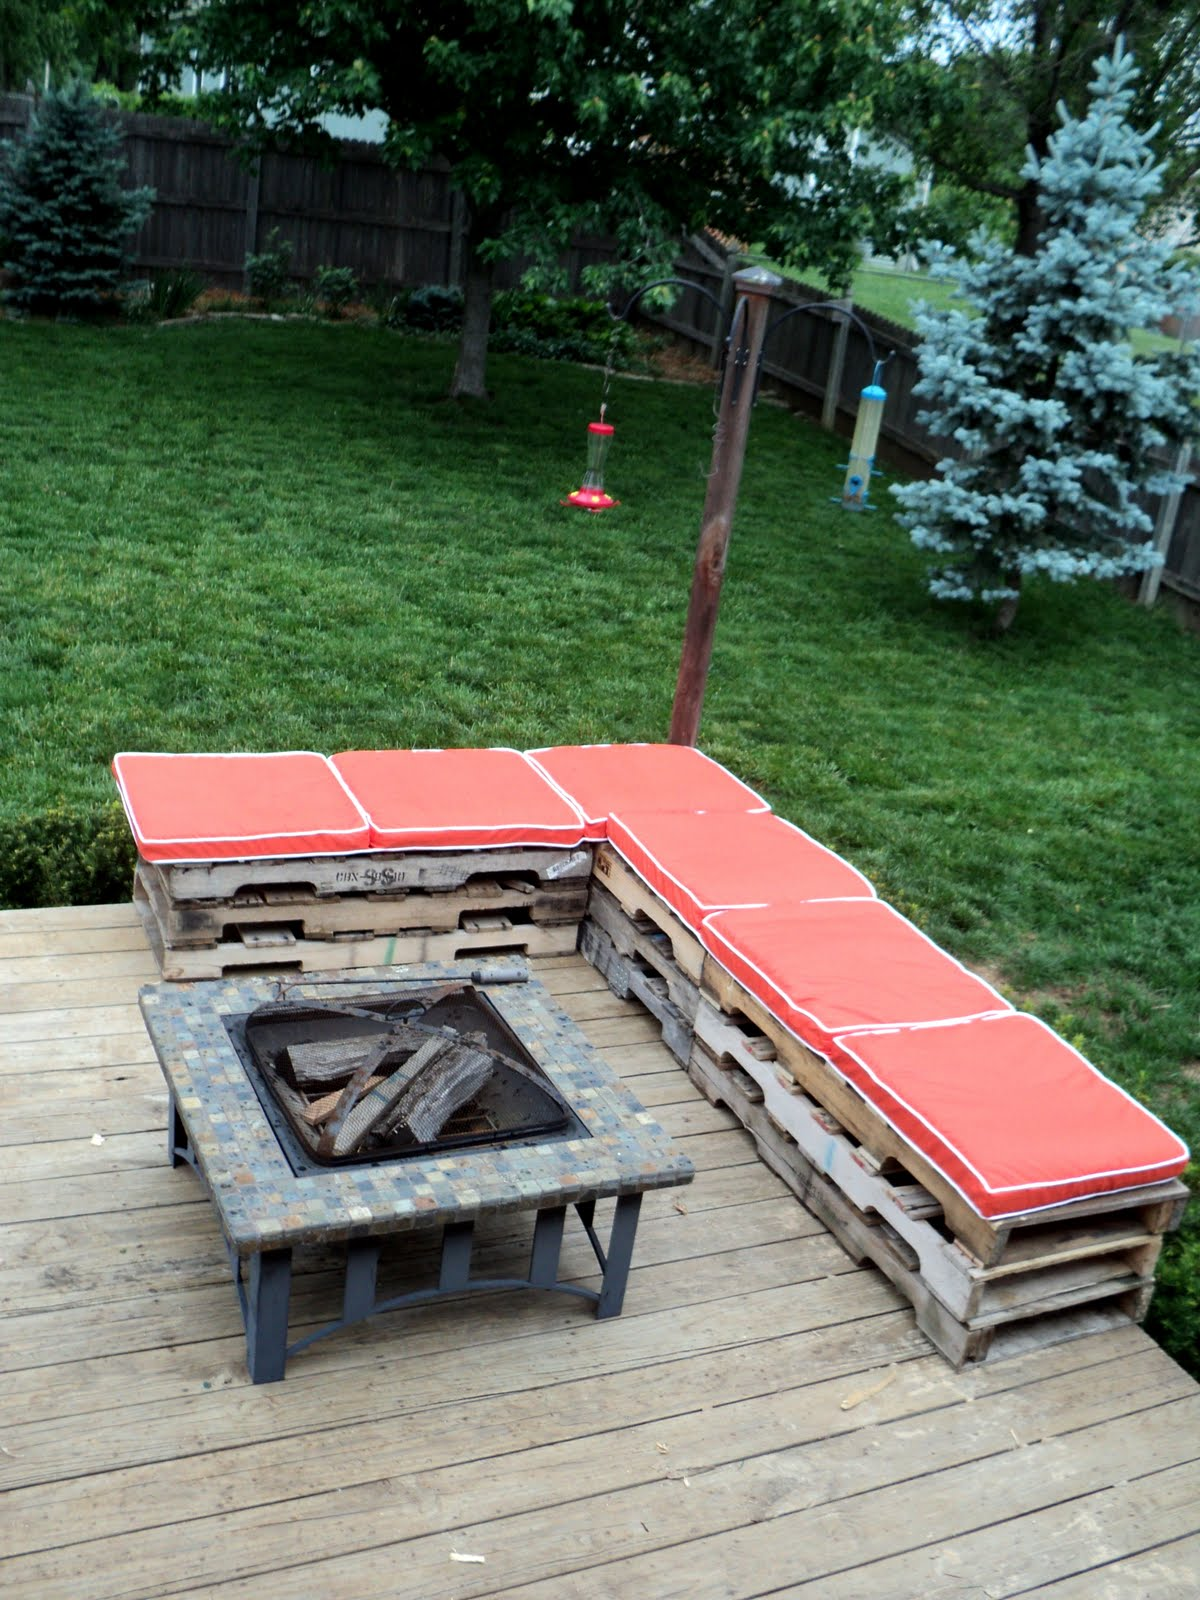 15 of the best backyard diy projects the craftiest couple Pallet ideas